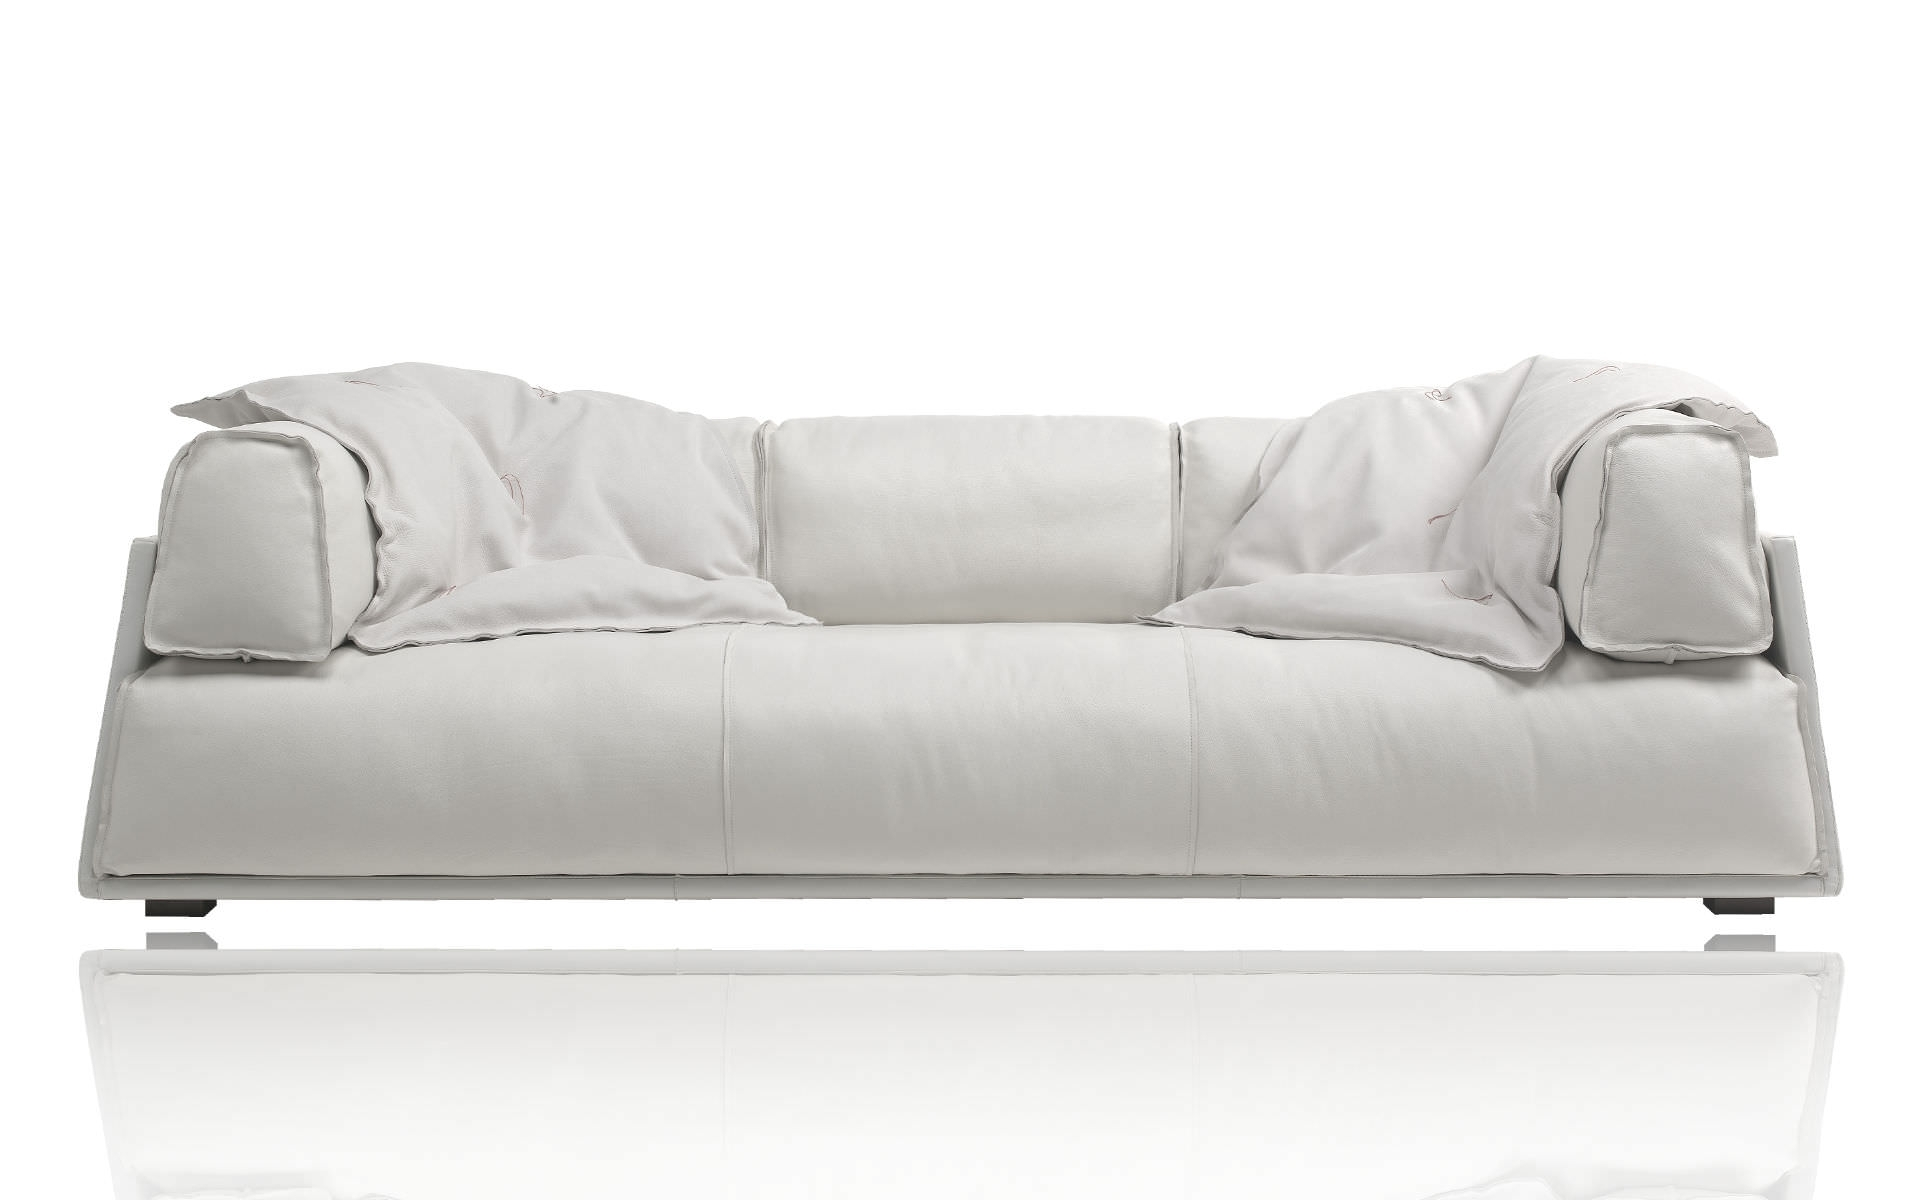 Soft Sofa – Mforum In Well Liked Soft Sofas (View 7 of 15)